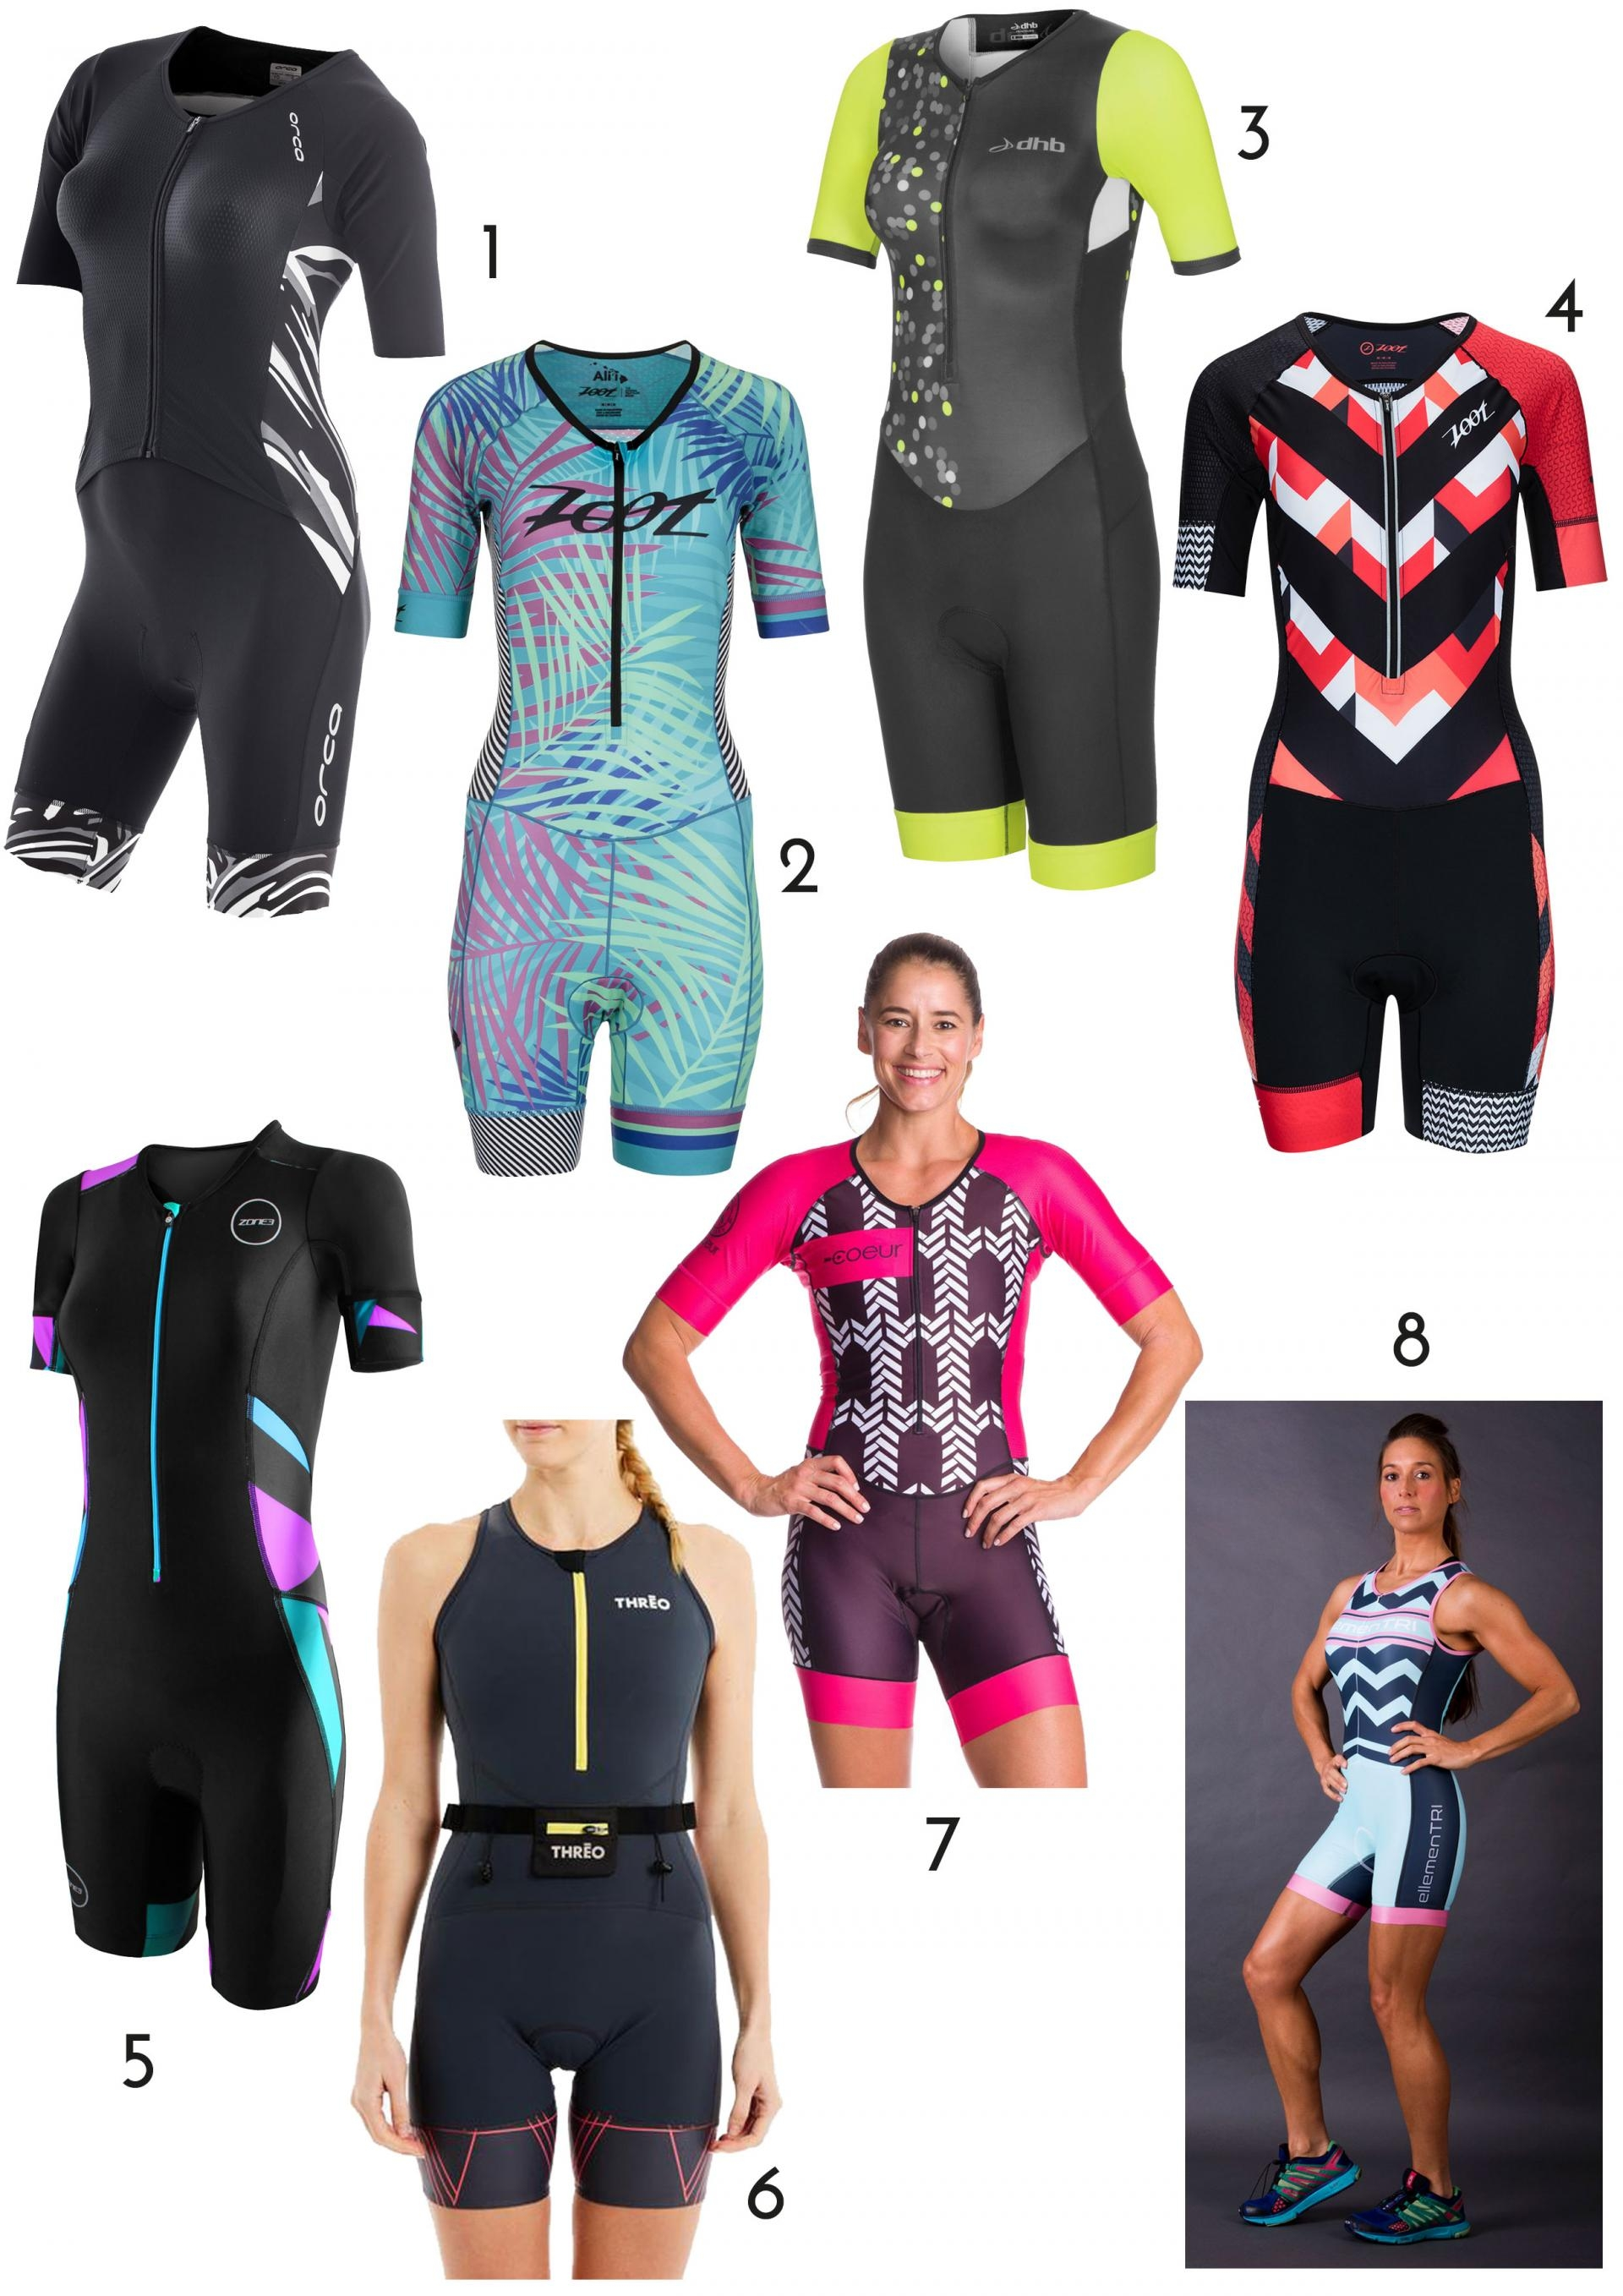 8 of the best women's trisuits